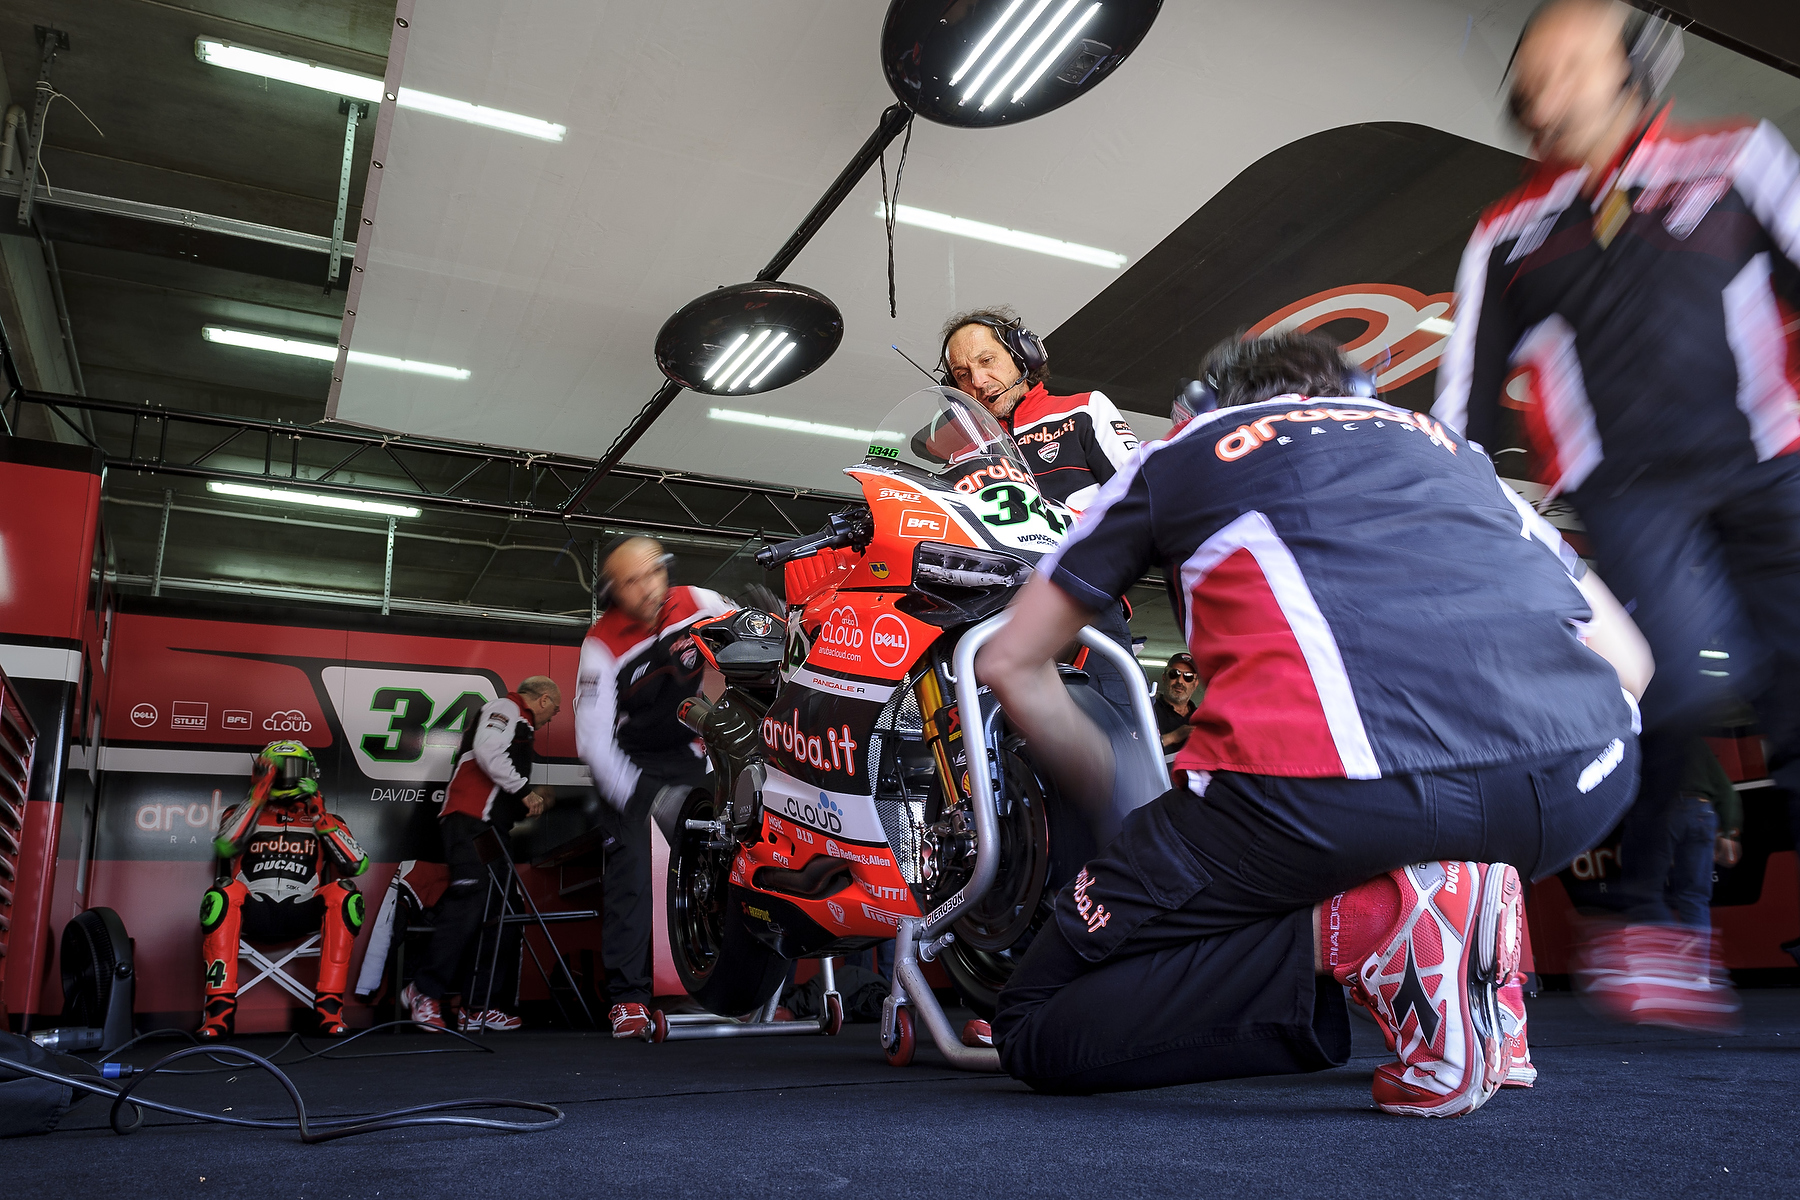 014_R05_Imola_gallery